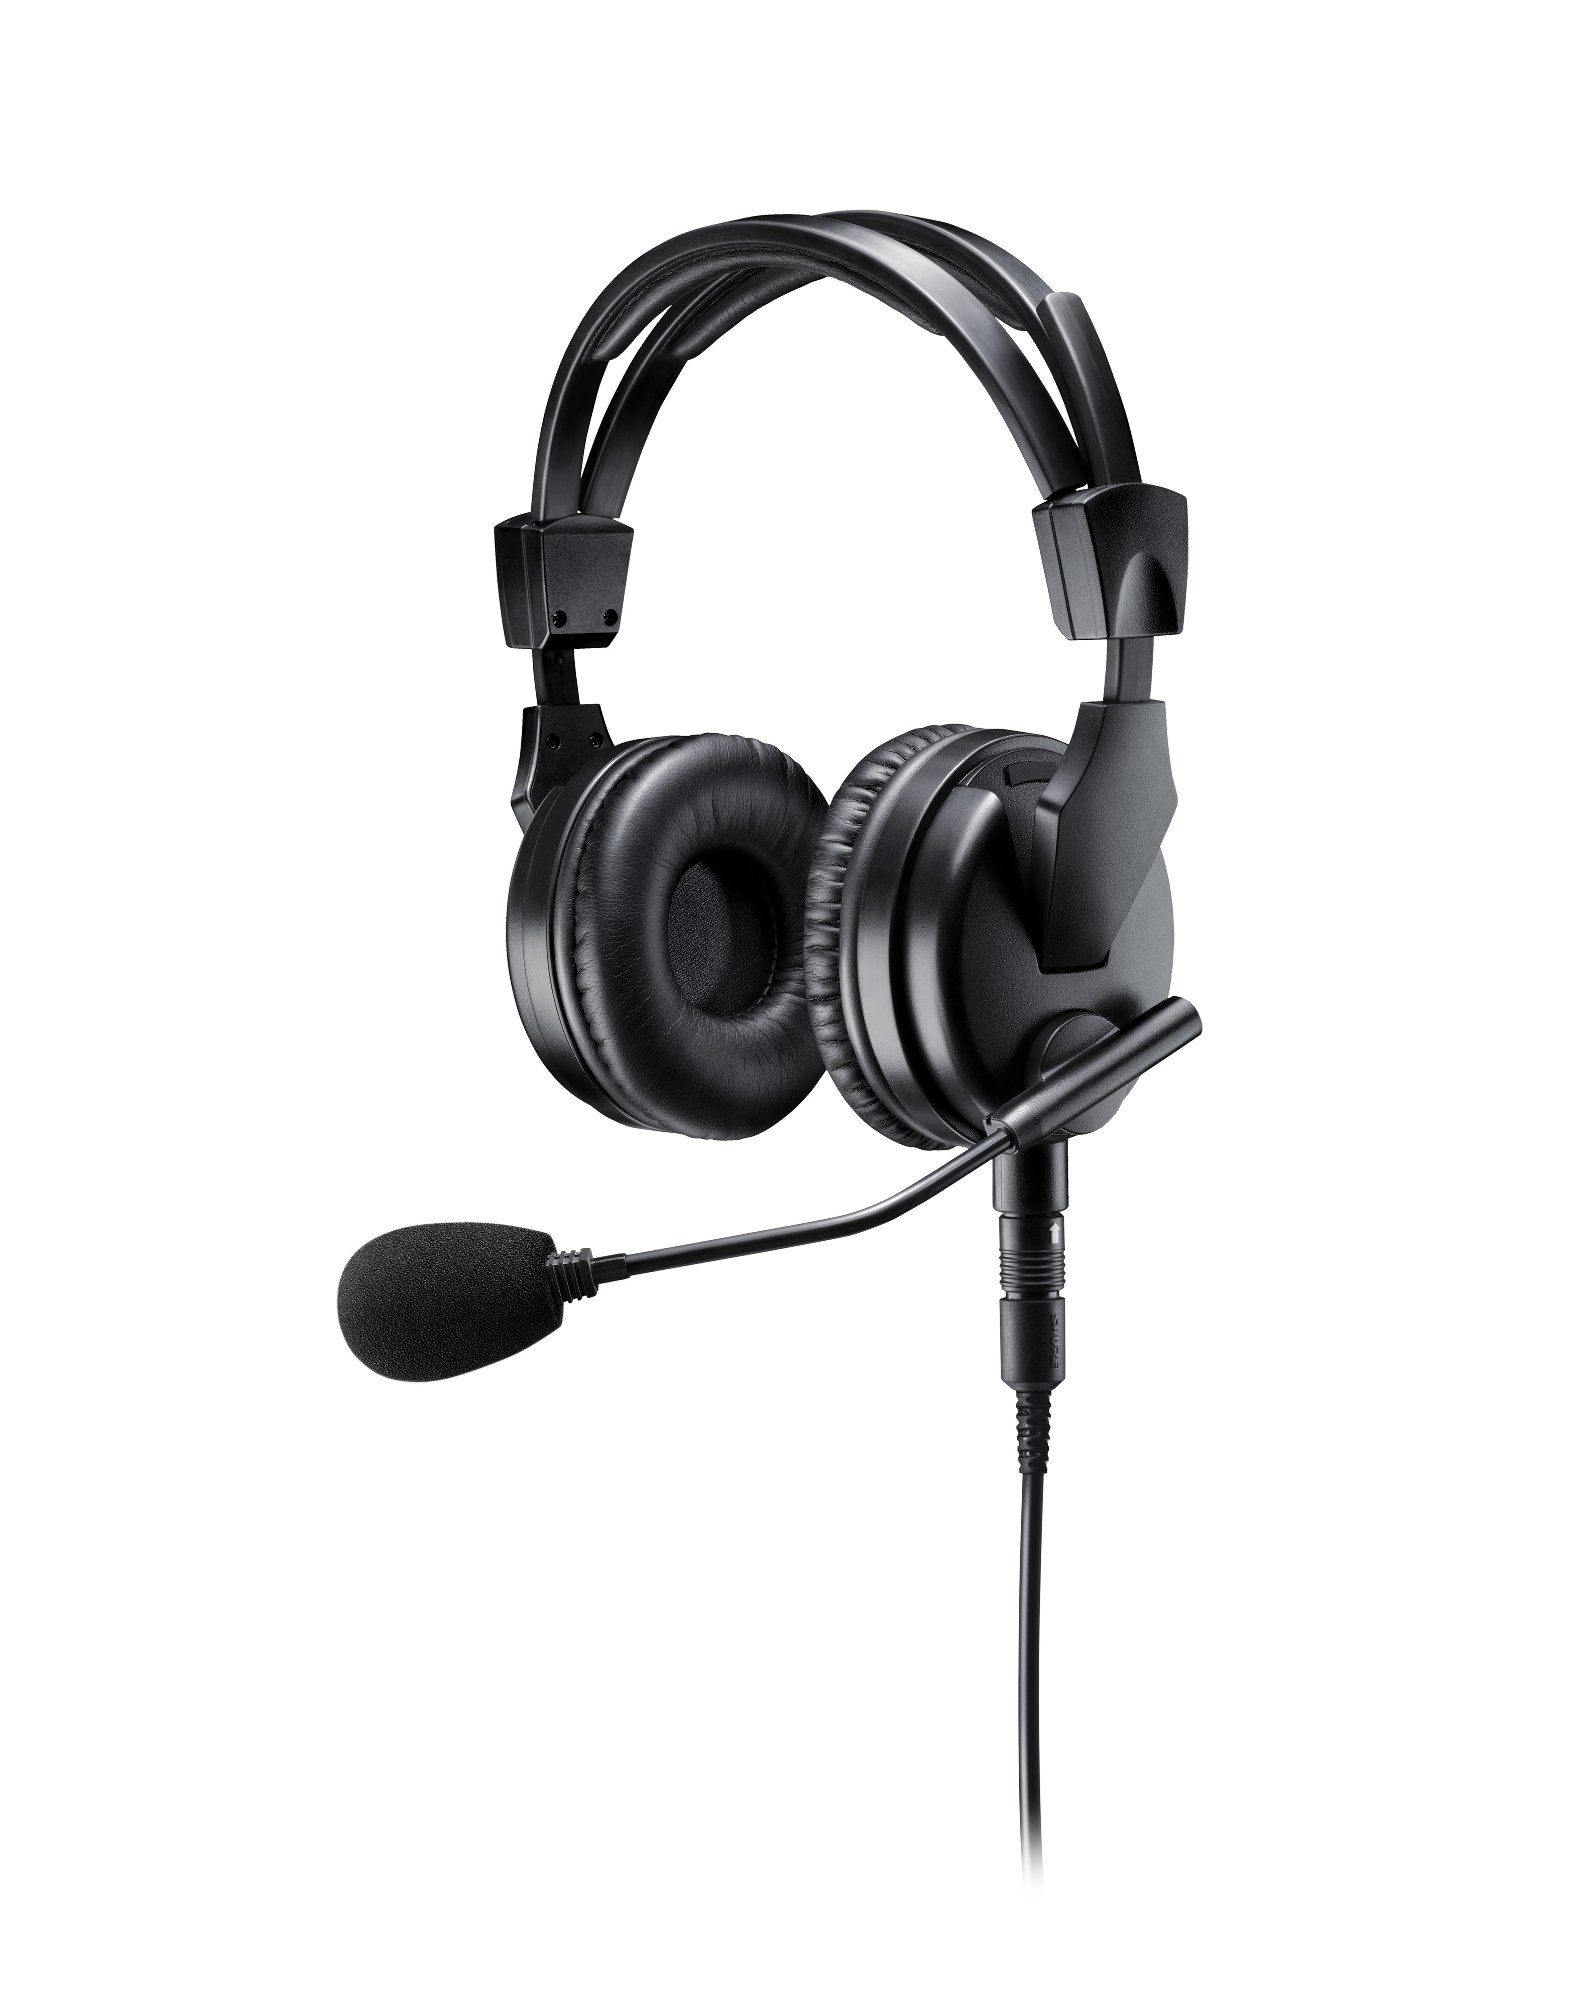 Premium Dual-Sided Broadcast Headset. Includes BCASCA-NXLR3Q